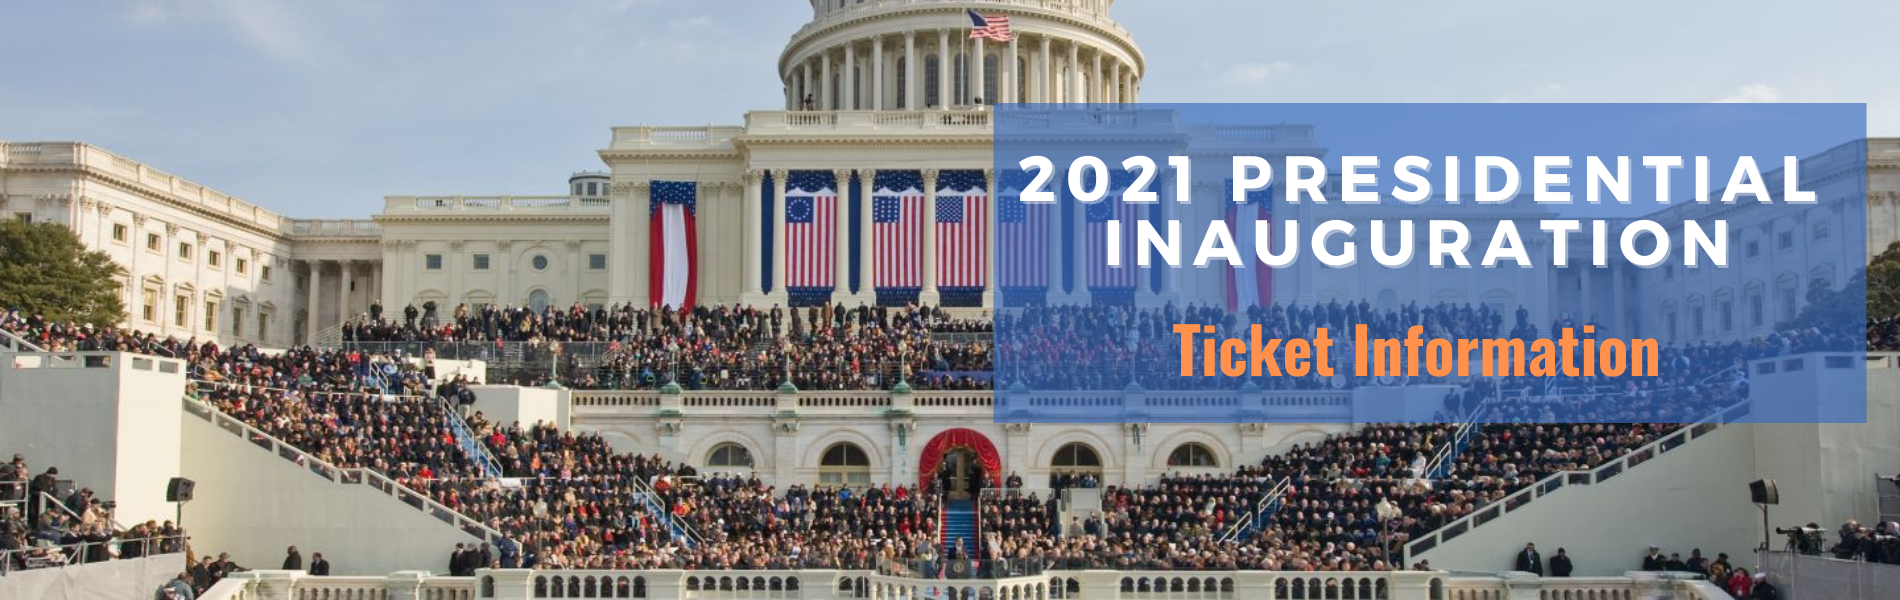 2021 Presidential Inauguration Ticket Information